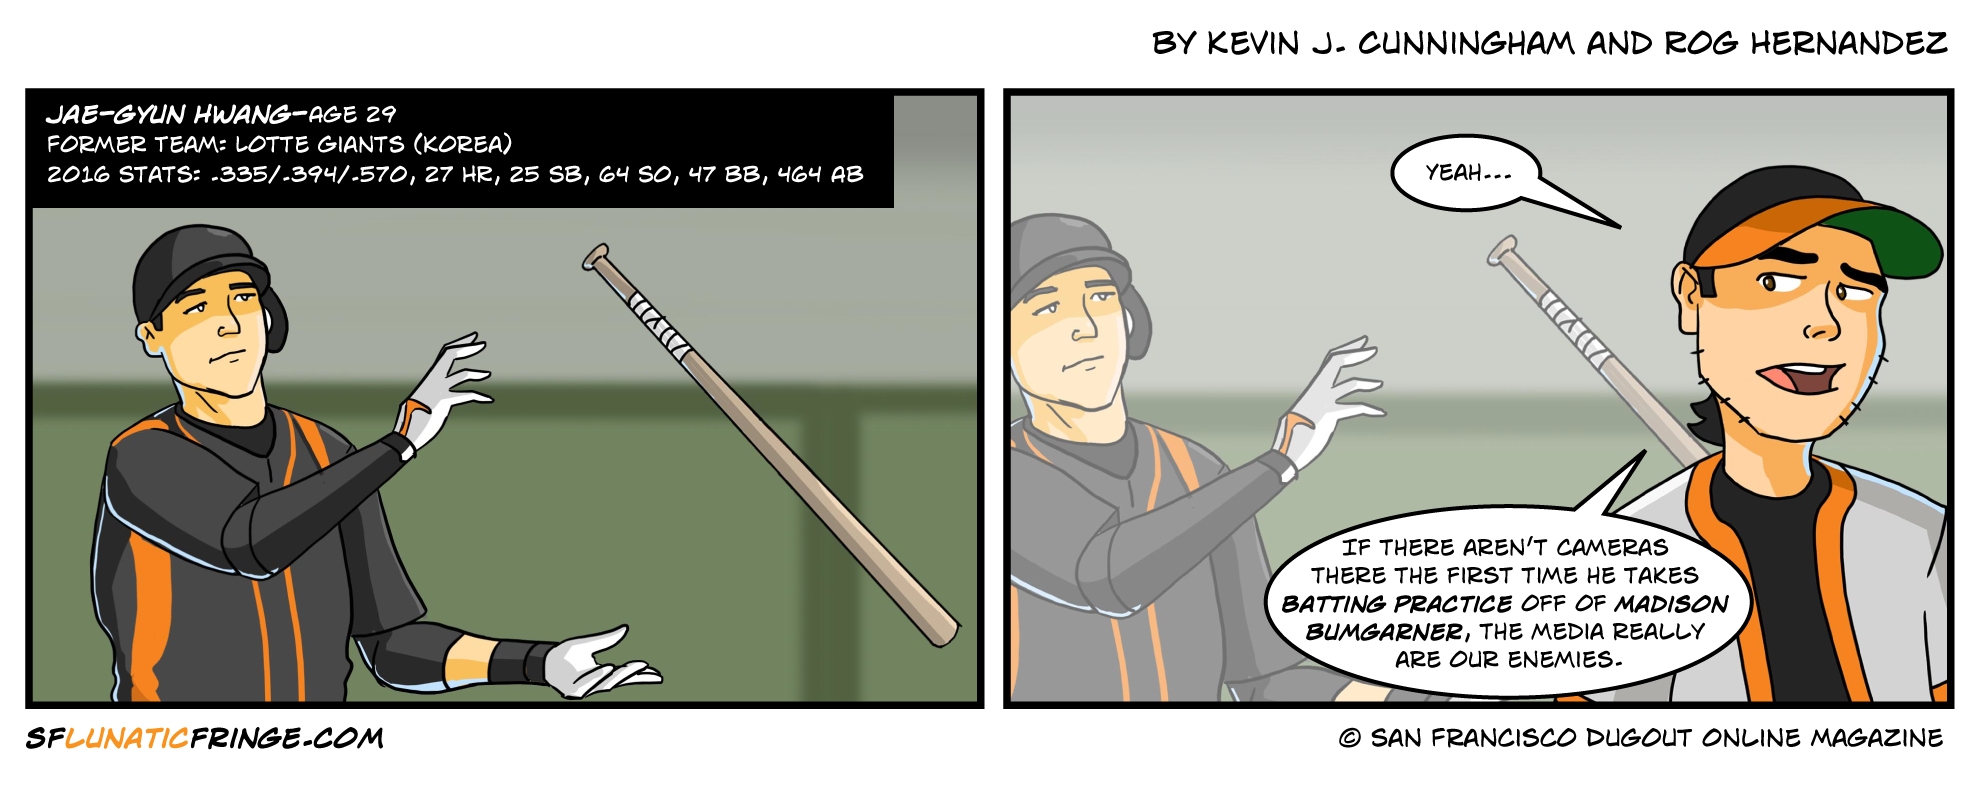 """Hwang"" would get a great sound effect for a home run swing in a comic, too."